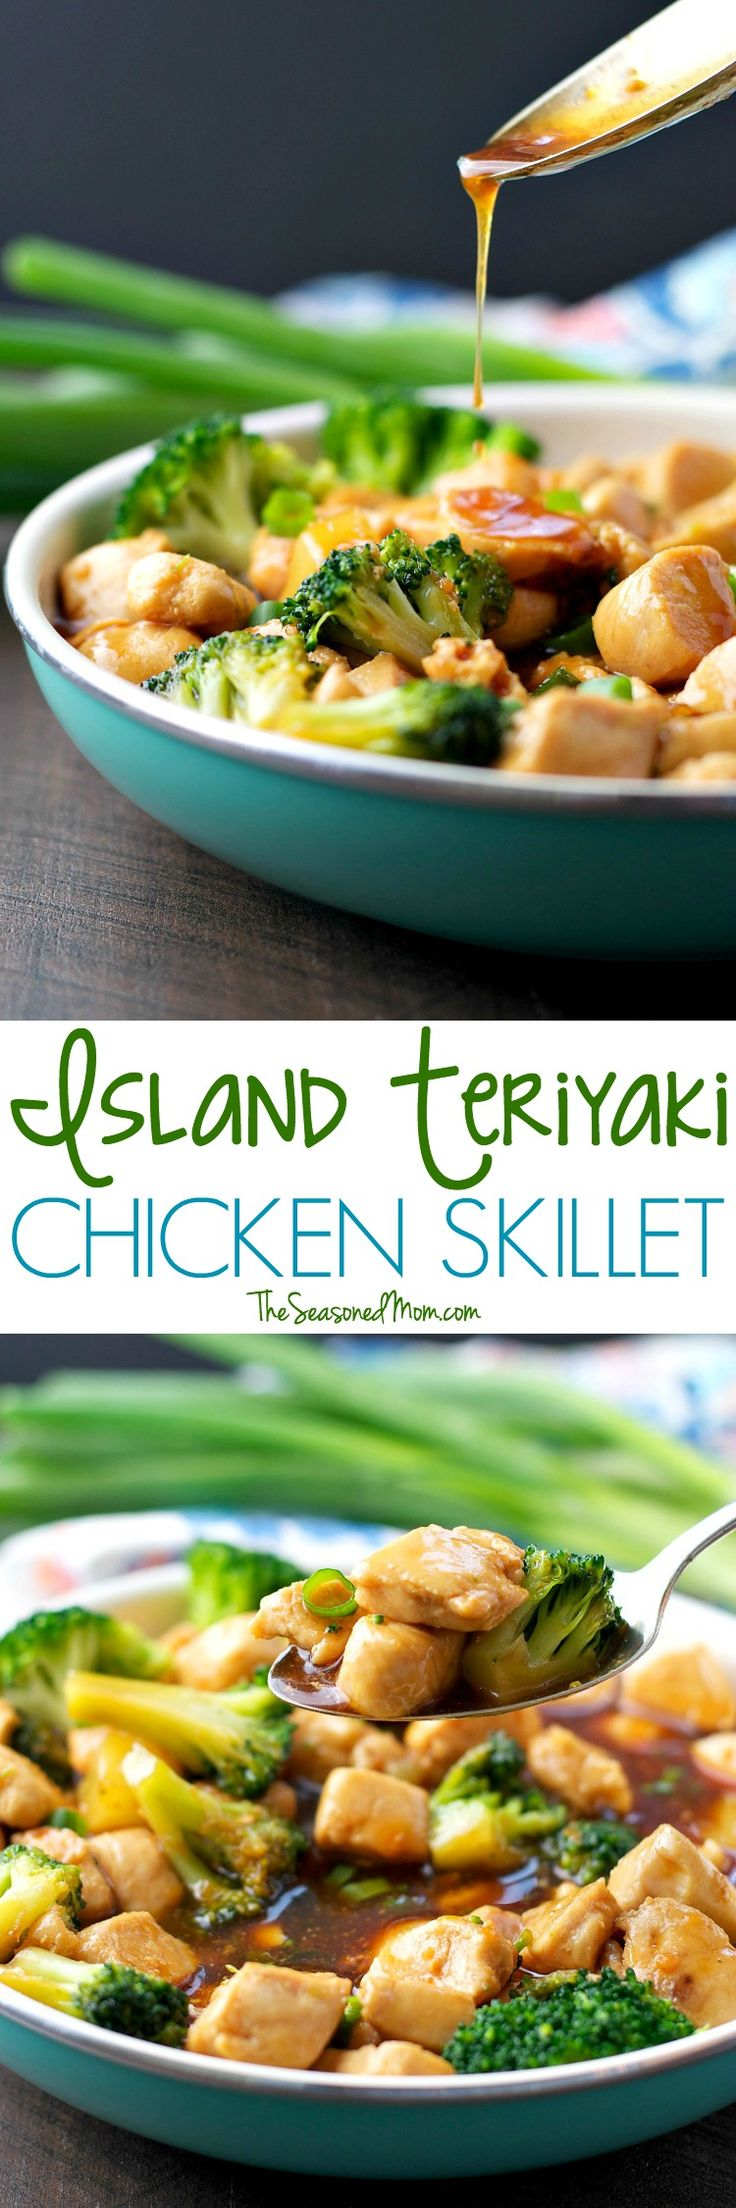 Island Teriyaki Chicken Skillet is a healthy, clean eating dinner that comes together in about 20 minutes -- and kids LOVE it!